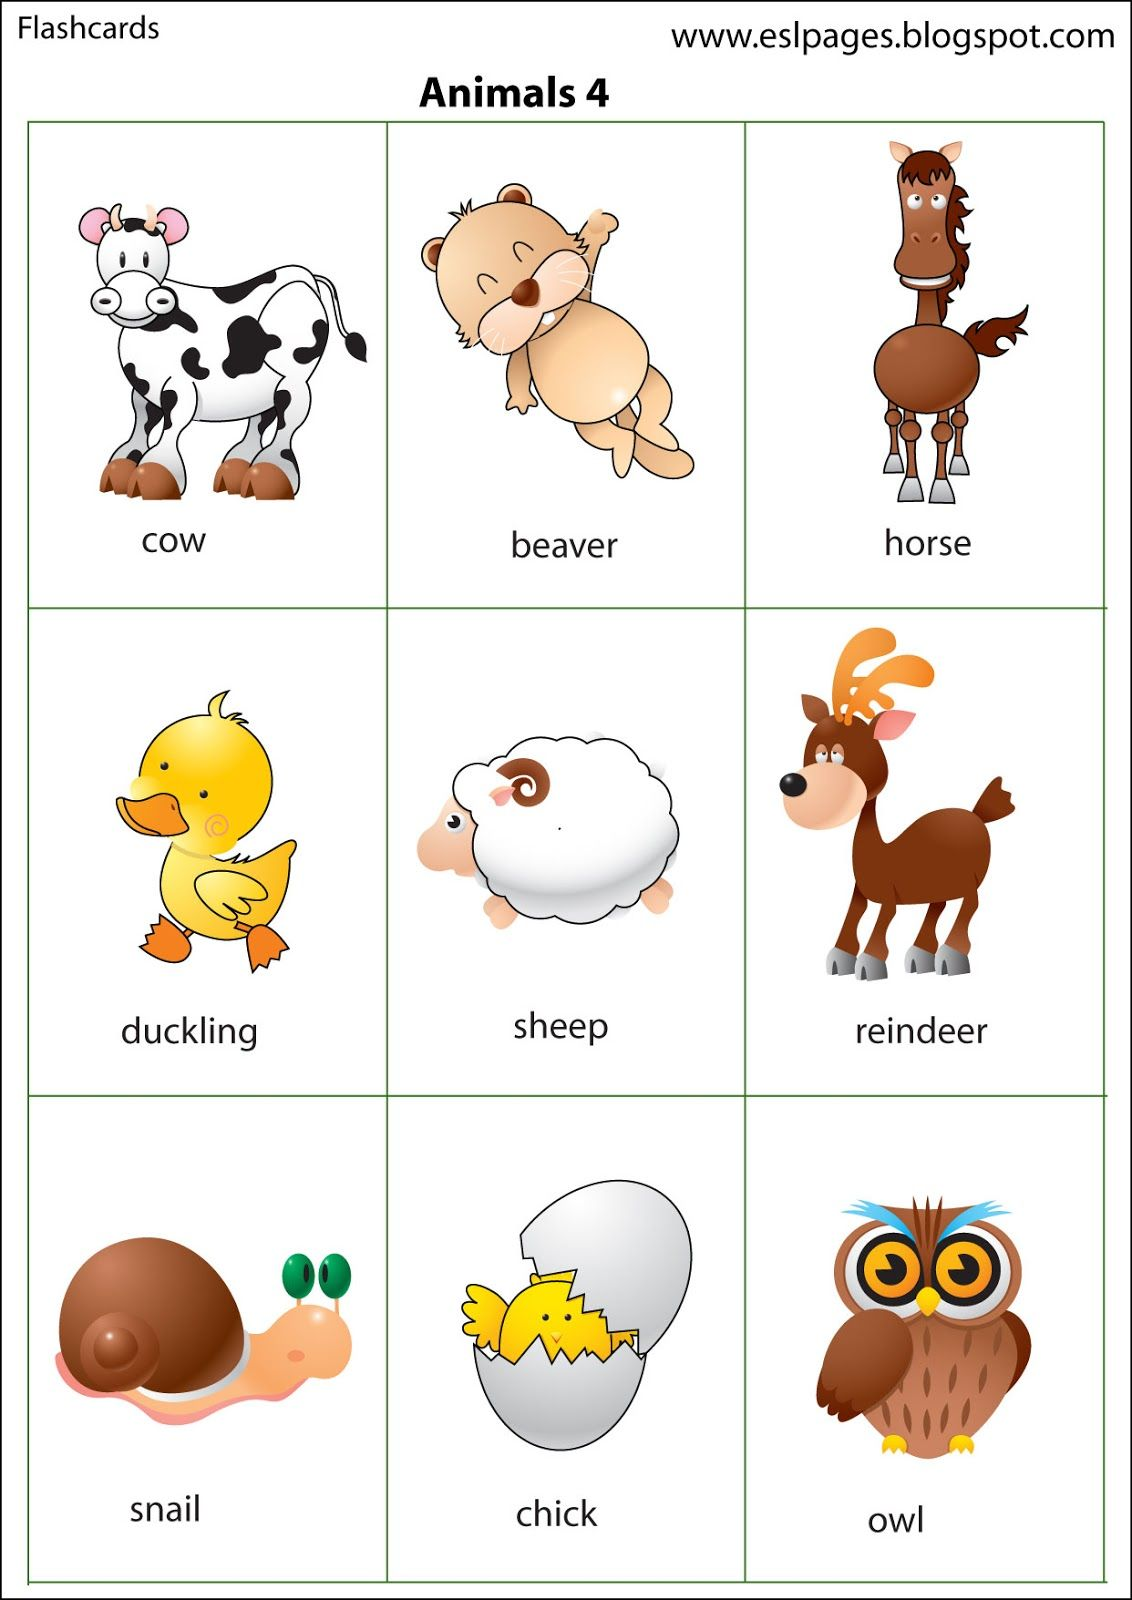 Esl Pages Animals